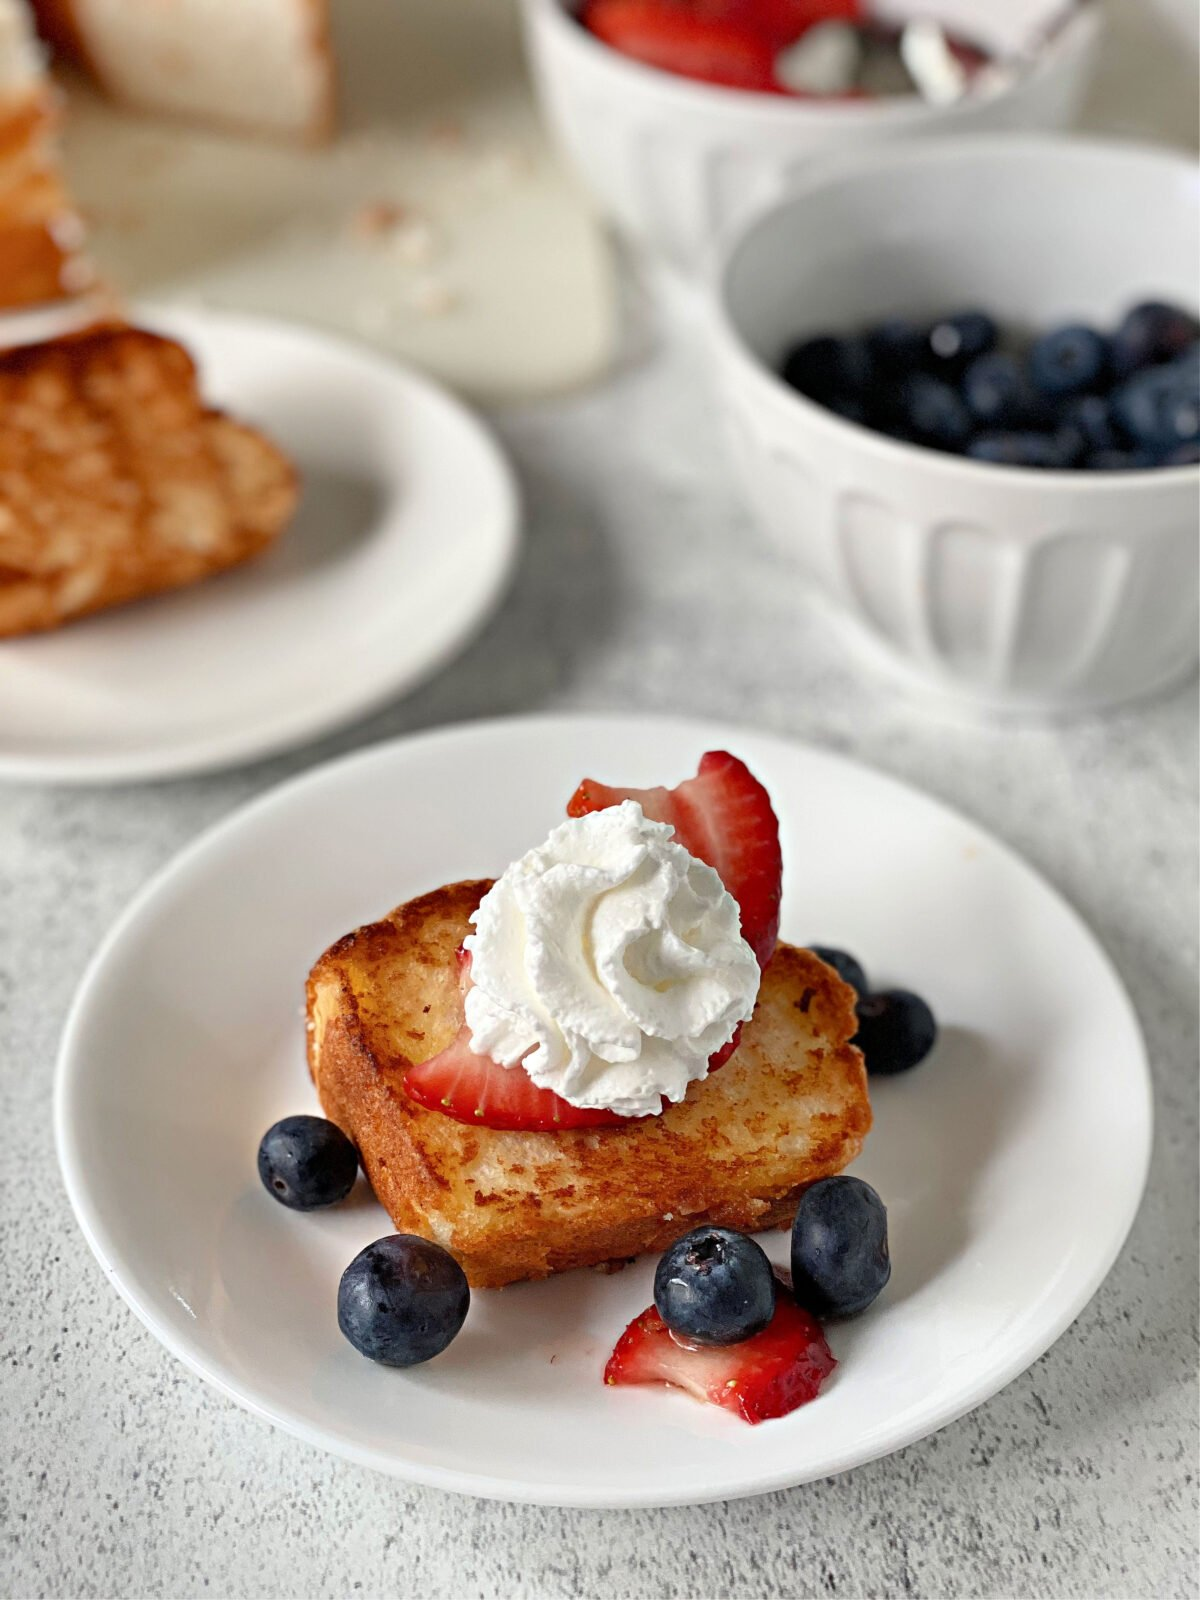 Toasted angel food cake with berries and whipped cream.